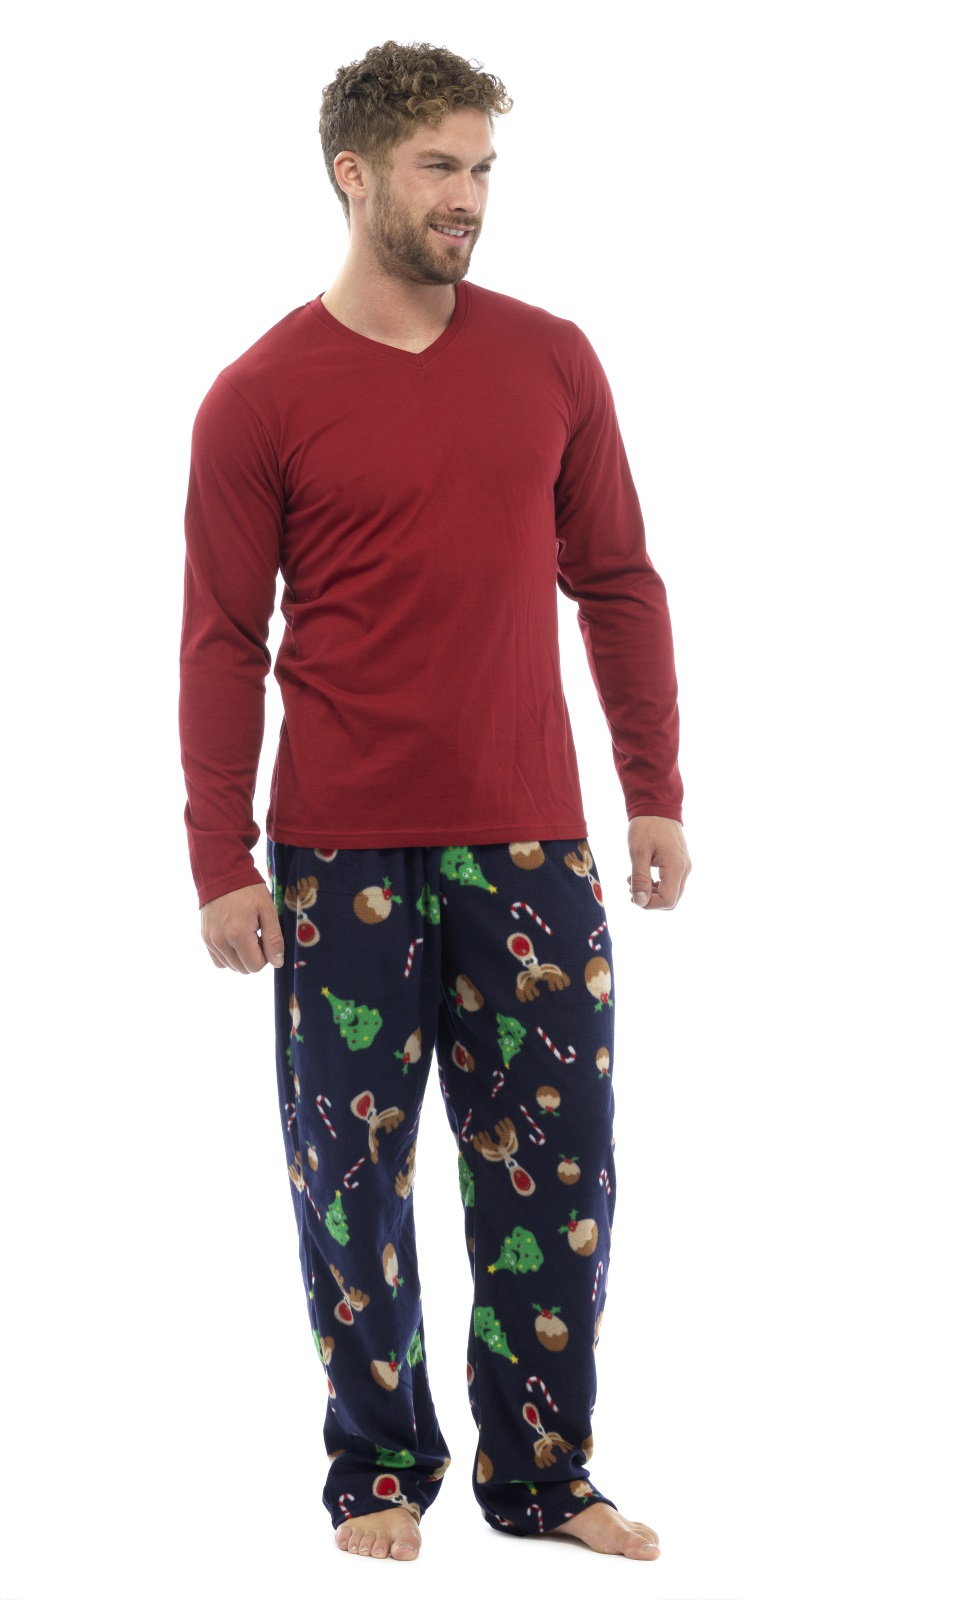 Buy Nightwear & loungewear from the Mens department at Debenhams. You'll find the widest range of Nightwear & loungewear products online and delivered to your door. Shop today!